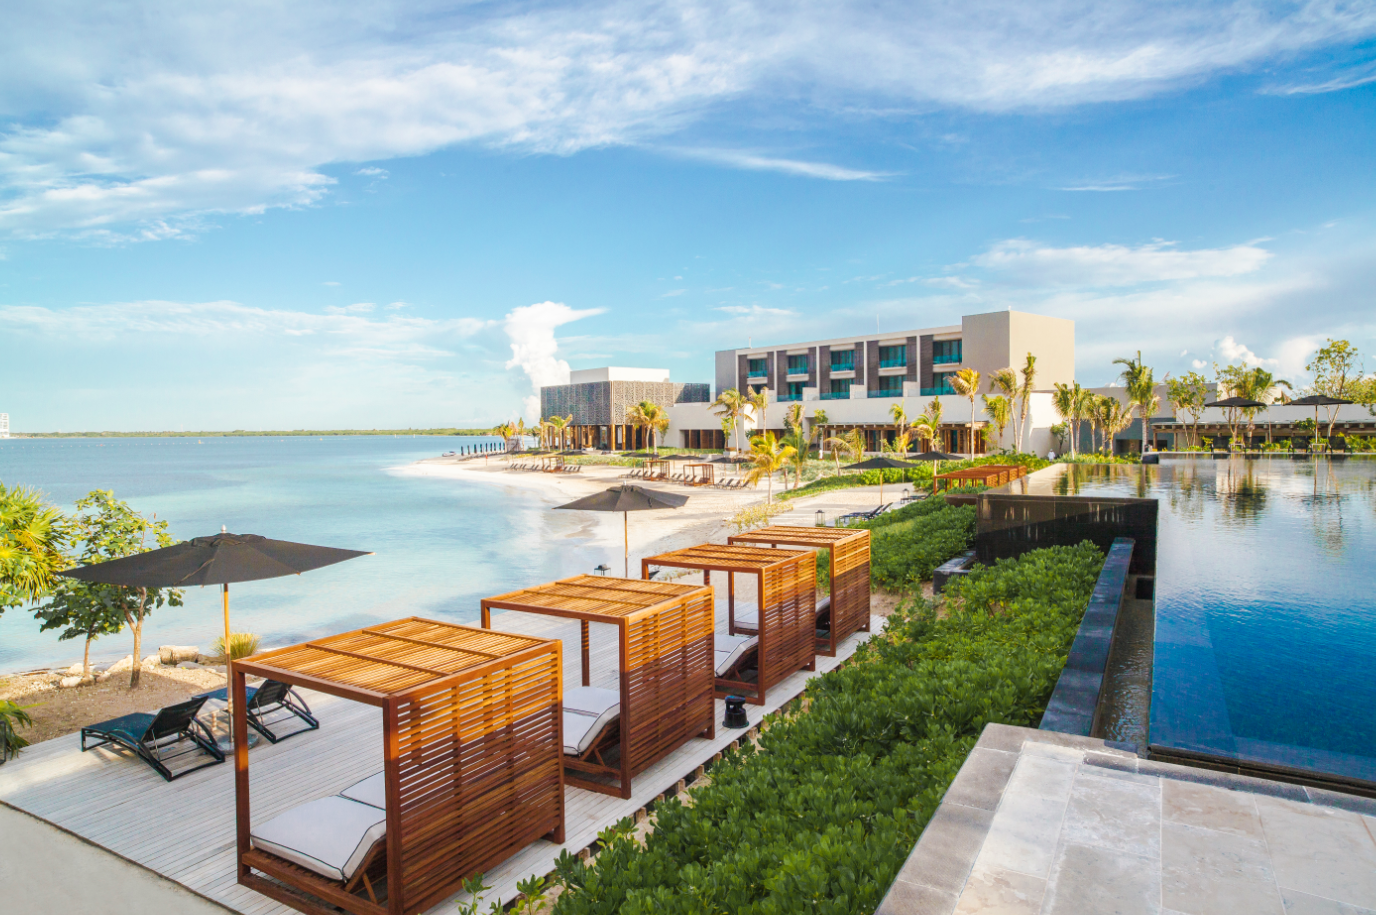 This luxury resort and spa offers guests an insanely memorable stay with highly customized service alongside crystal clear waters and